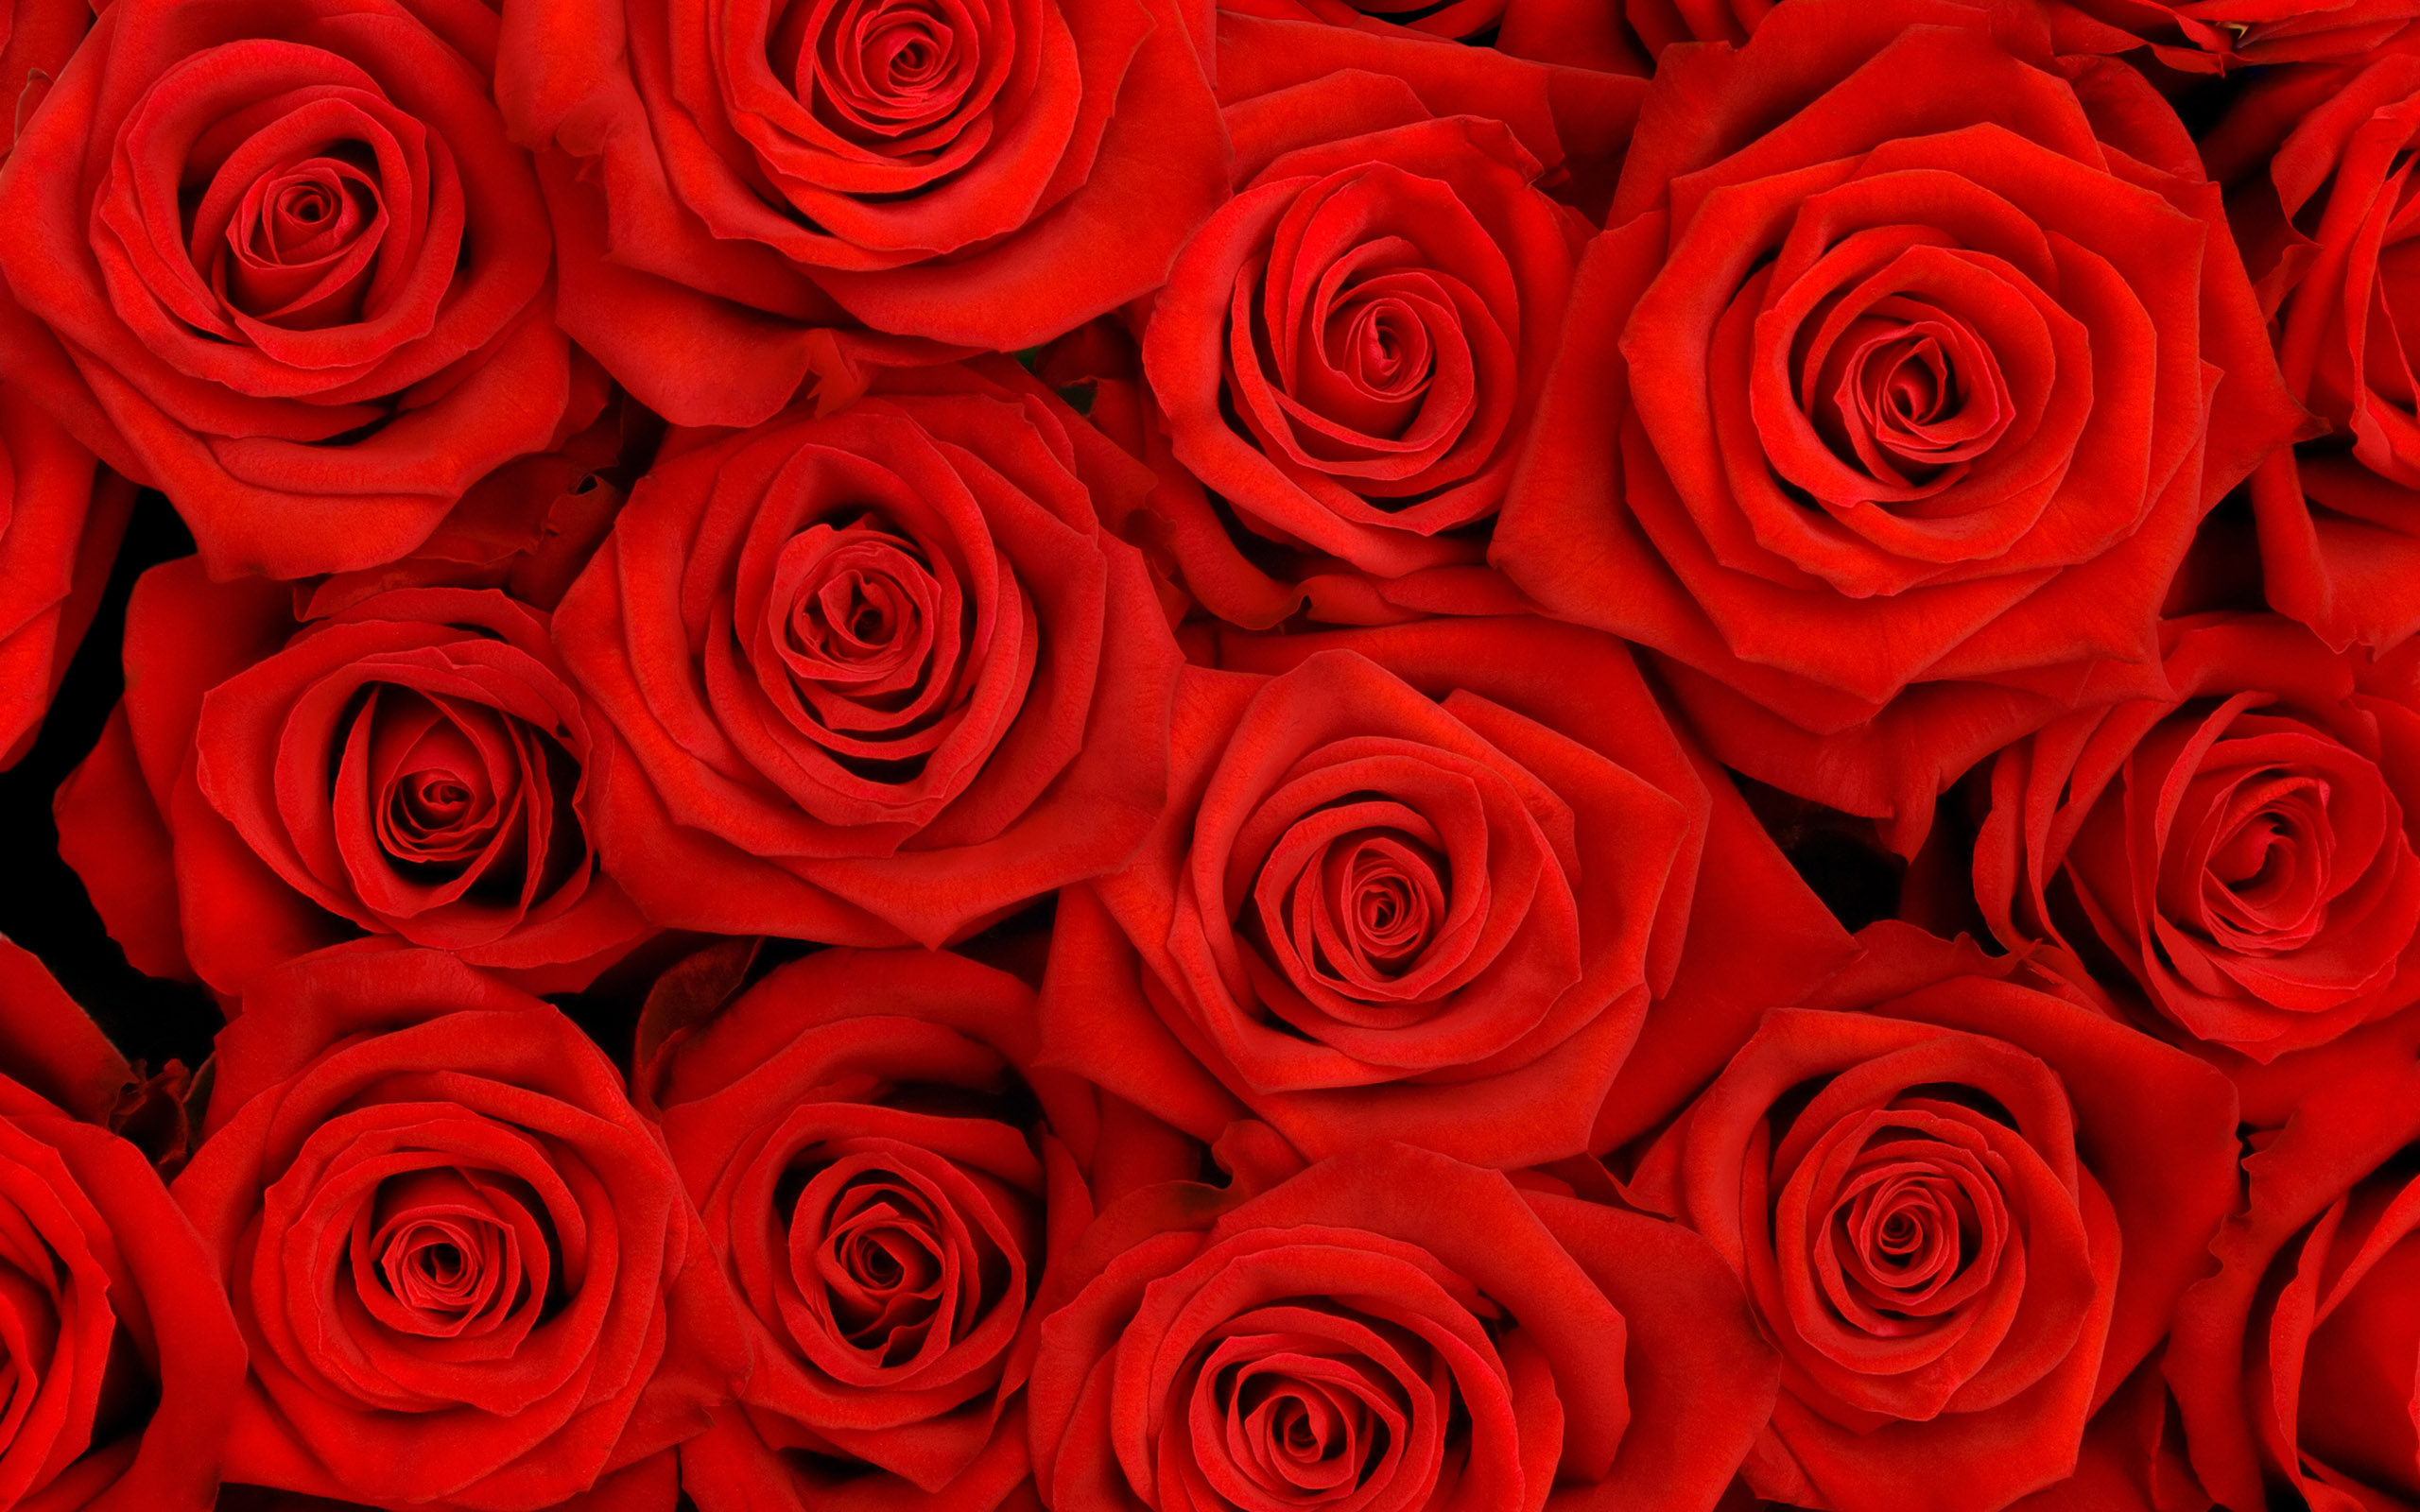 rose background 9 Cool Backgrounds